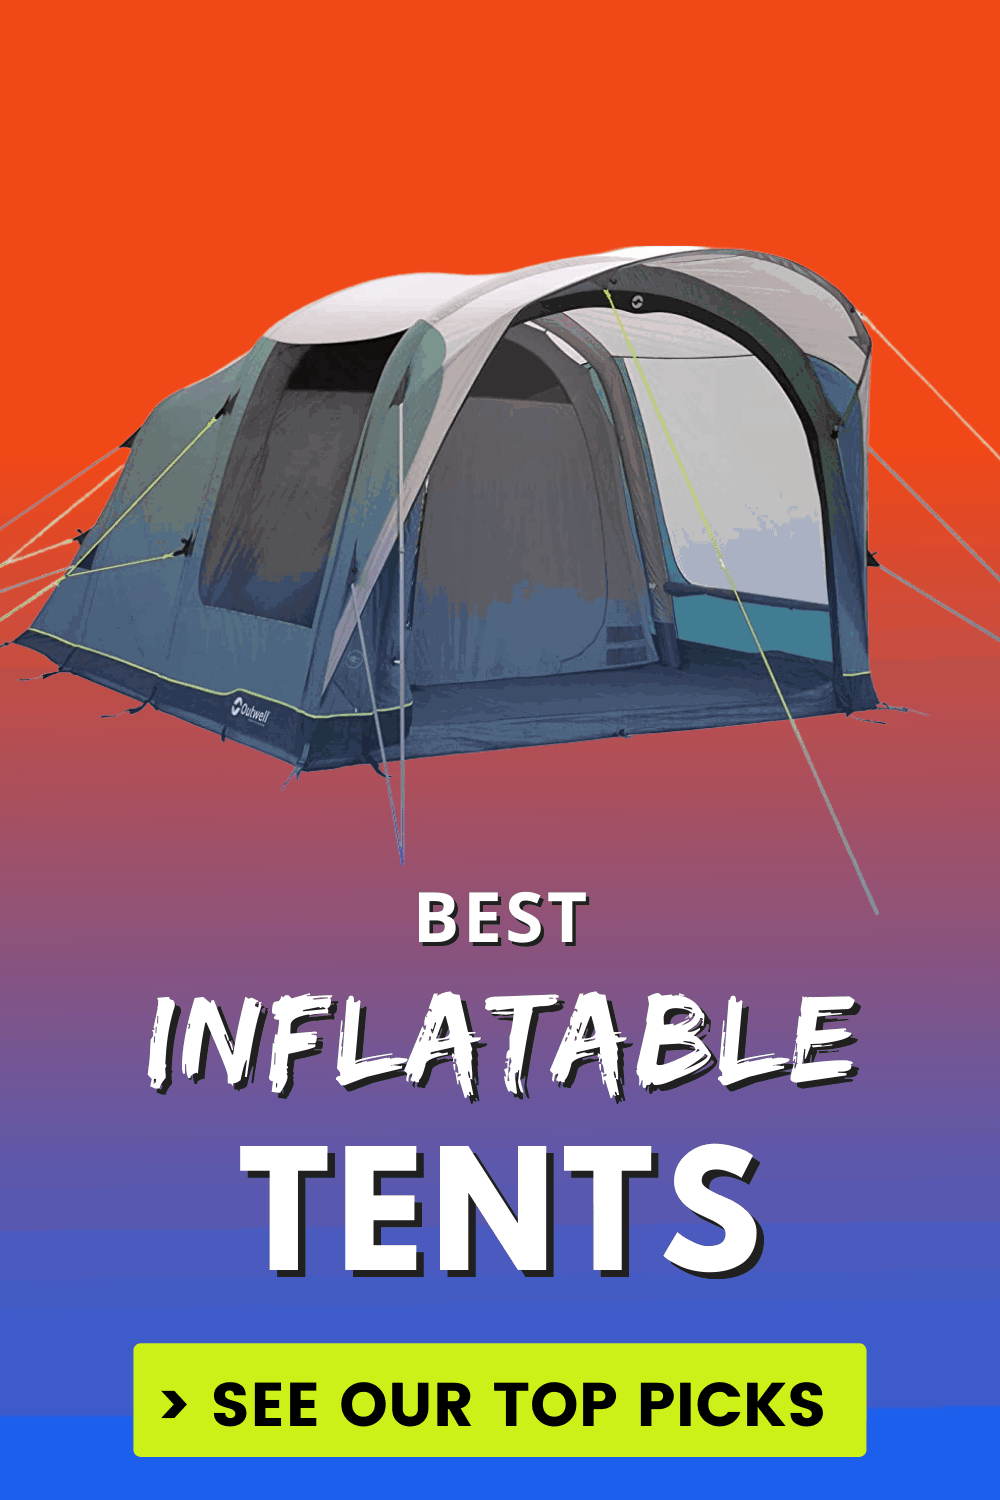 Best Inflatable tents